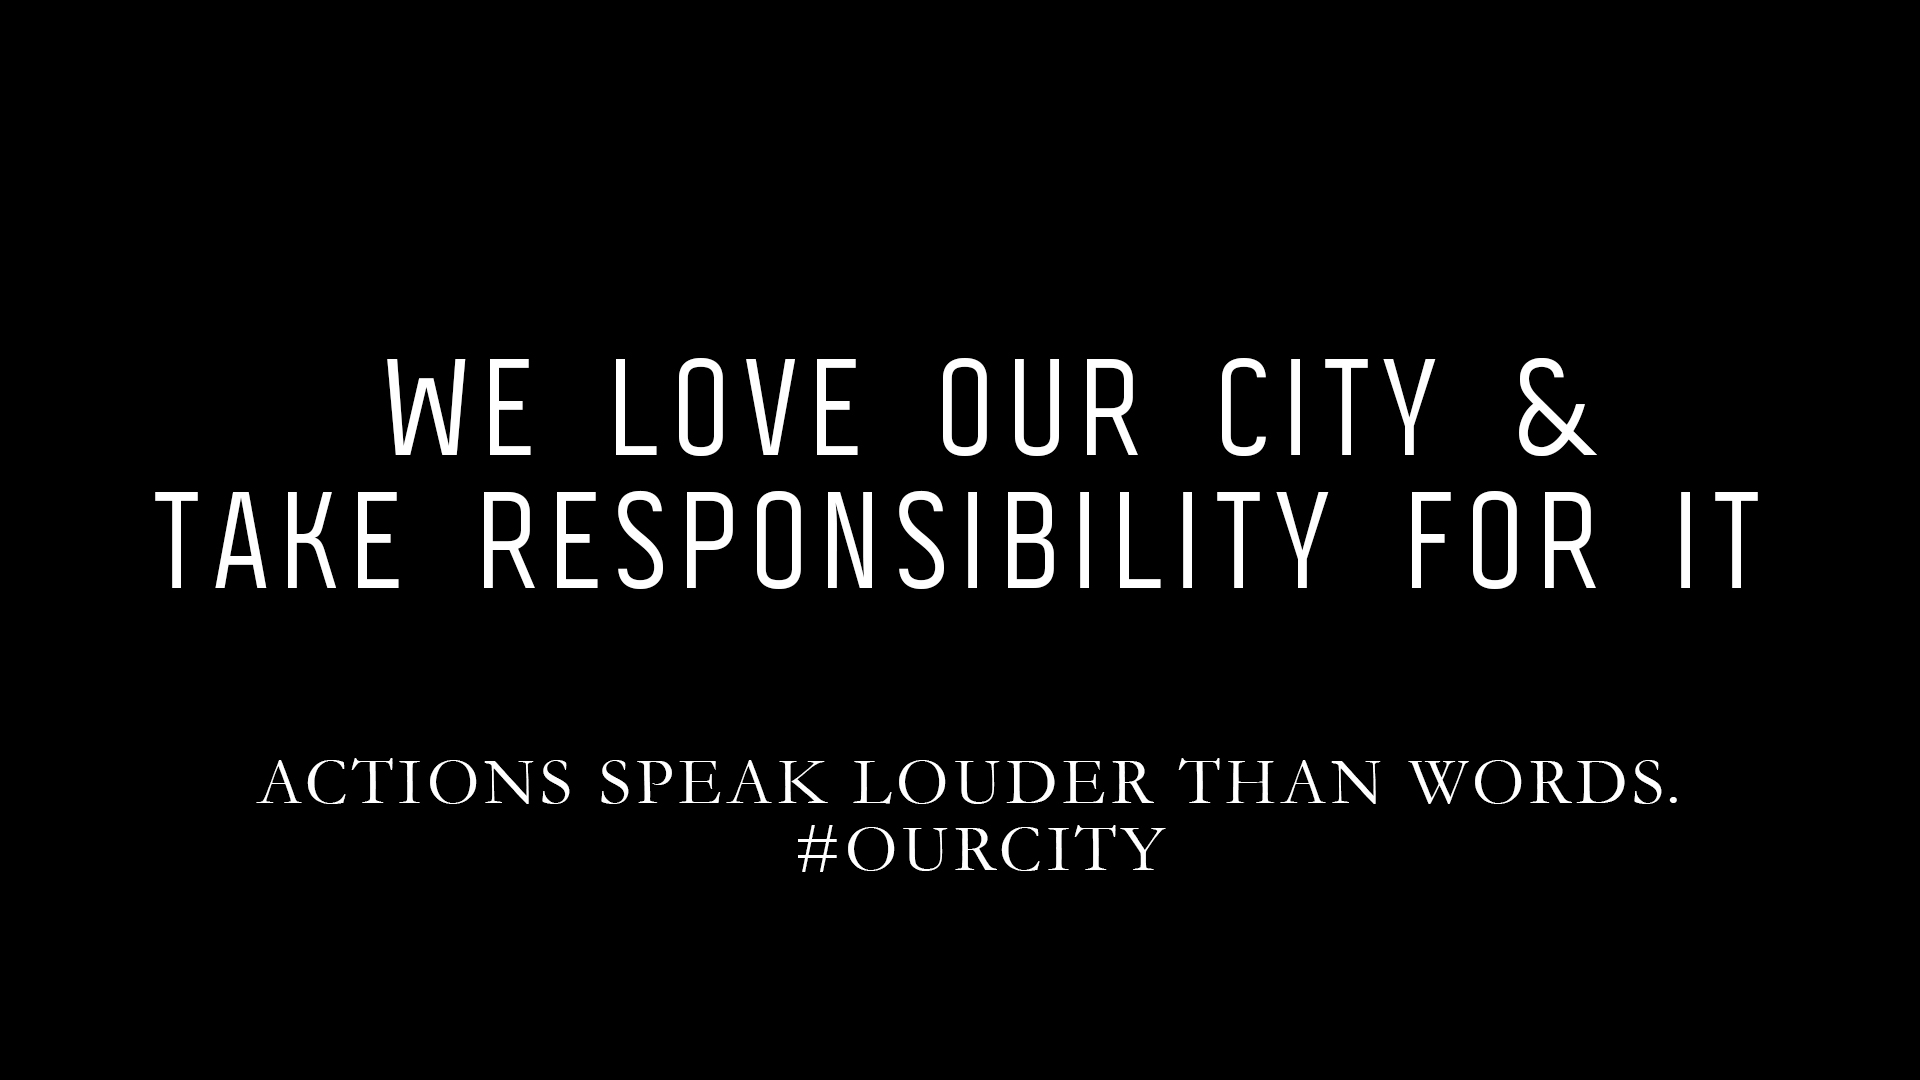 ACTIONS SPEAK LOUDER THAN WORDS.    #OURCITY